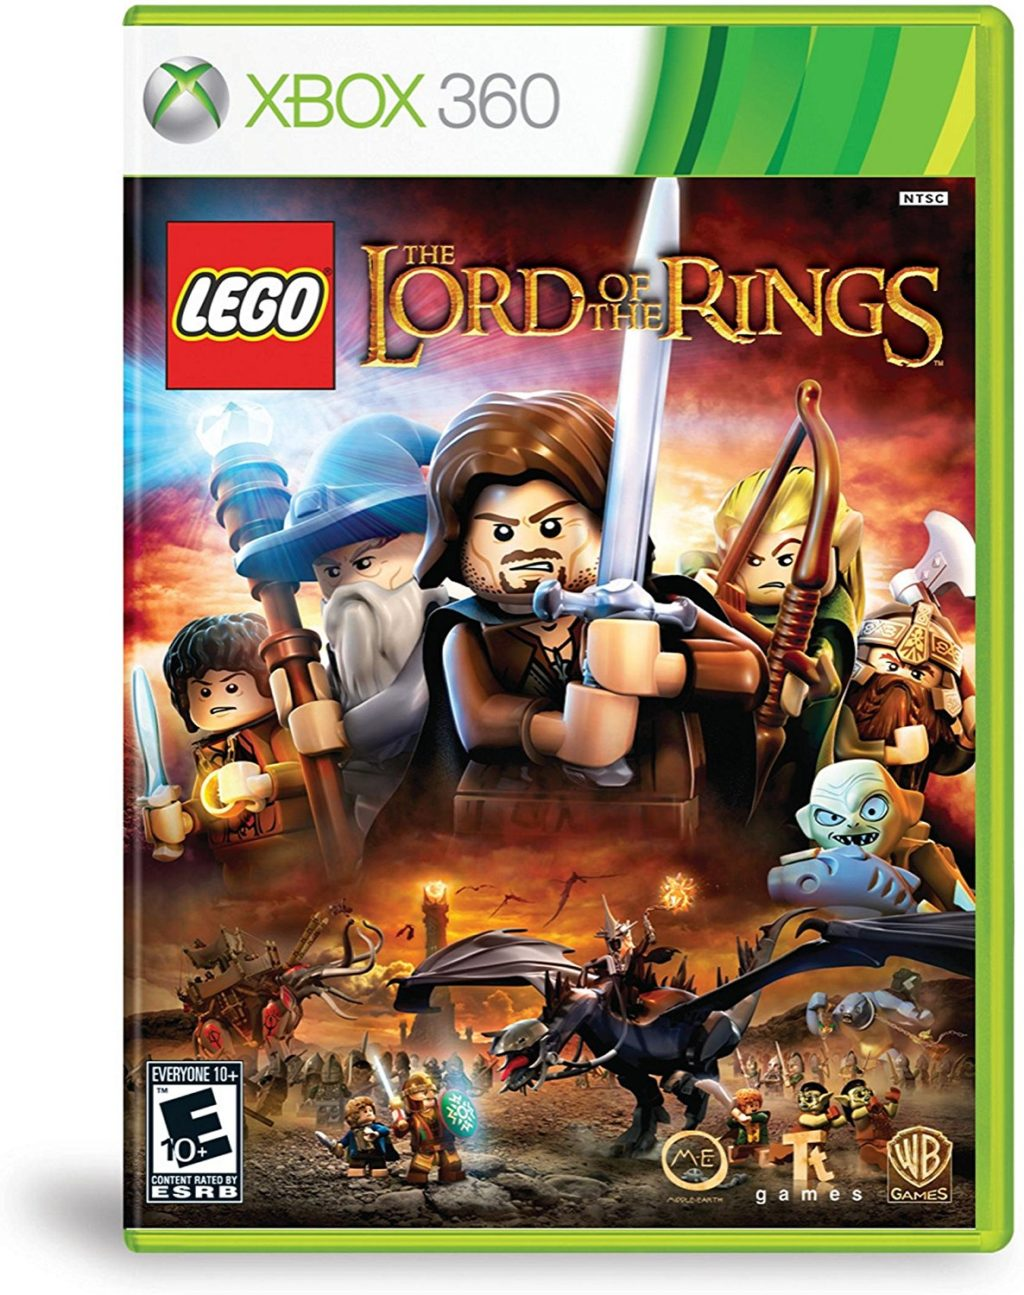 Lego Lord of the Rings 1024x1295 - 9 Best Lego Video Games